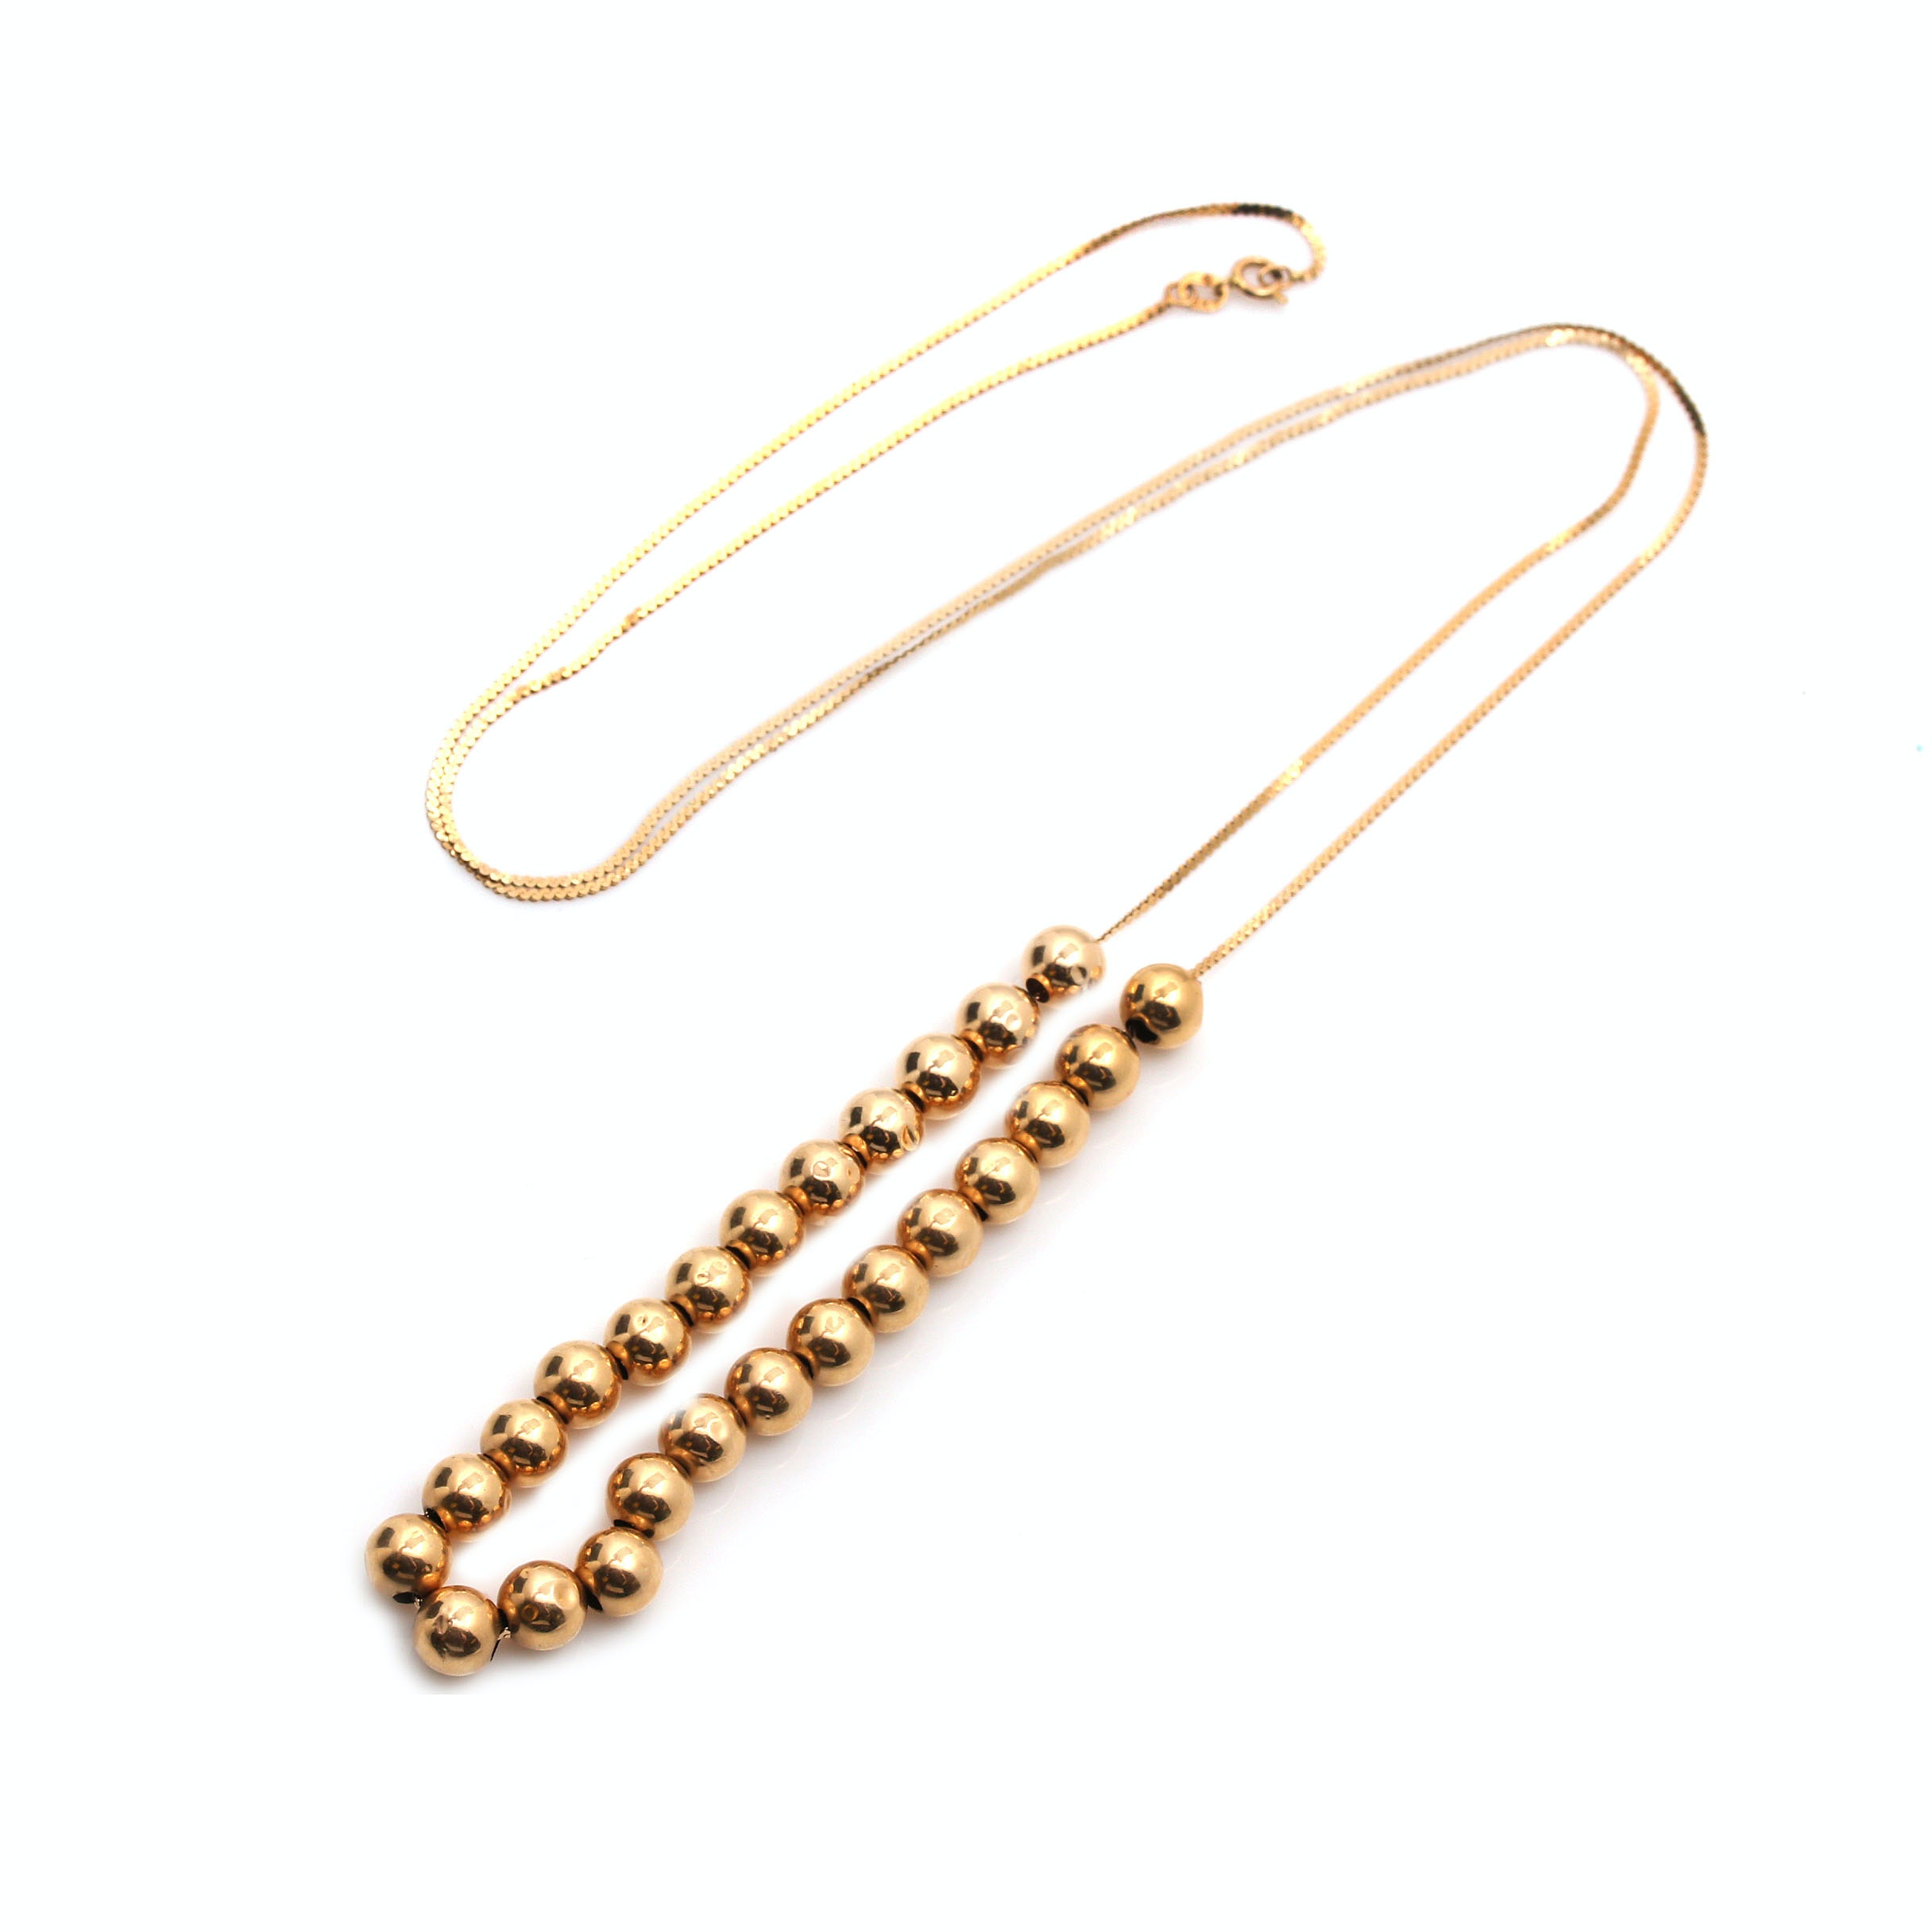 14K Yellow Gold Beaded Necklace